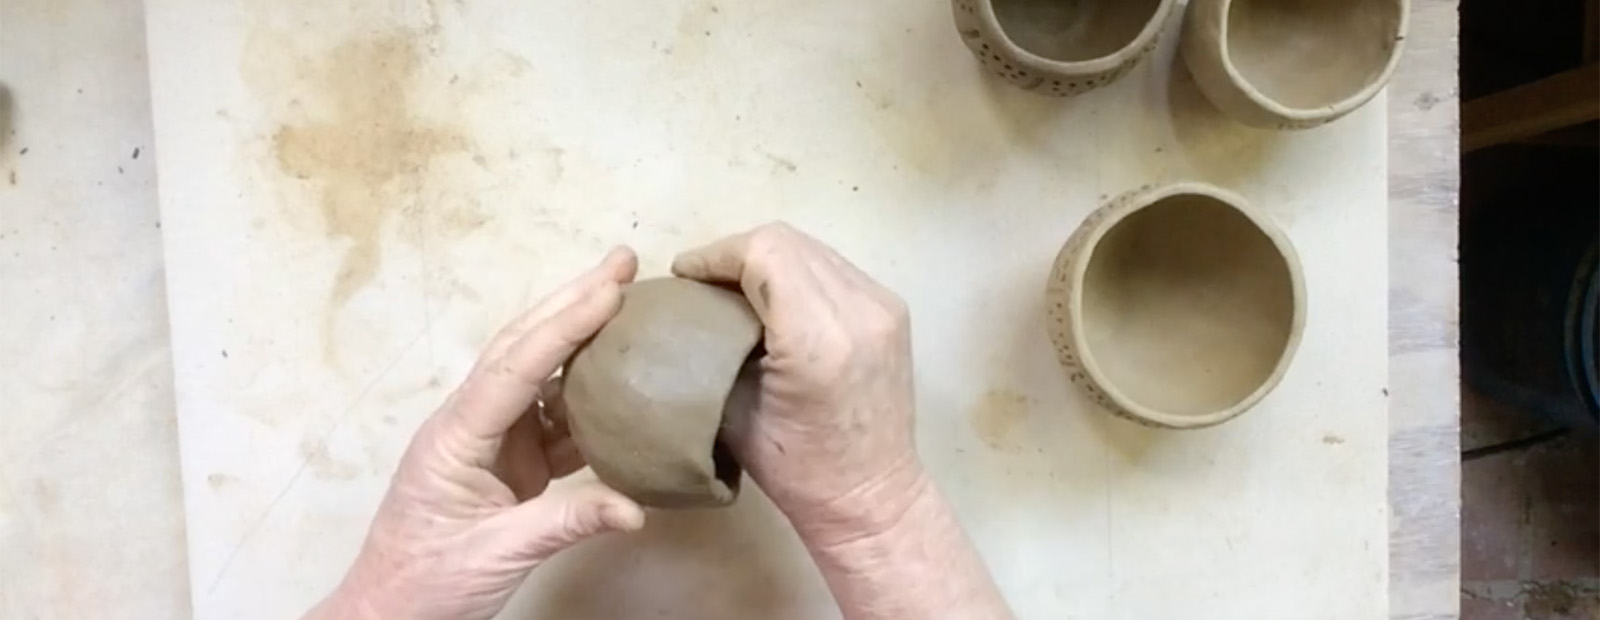 Hands making a pinch pot out of clay